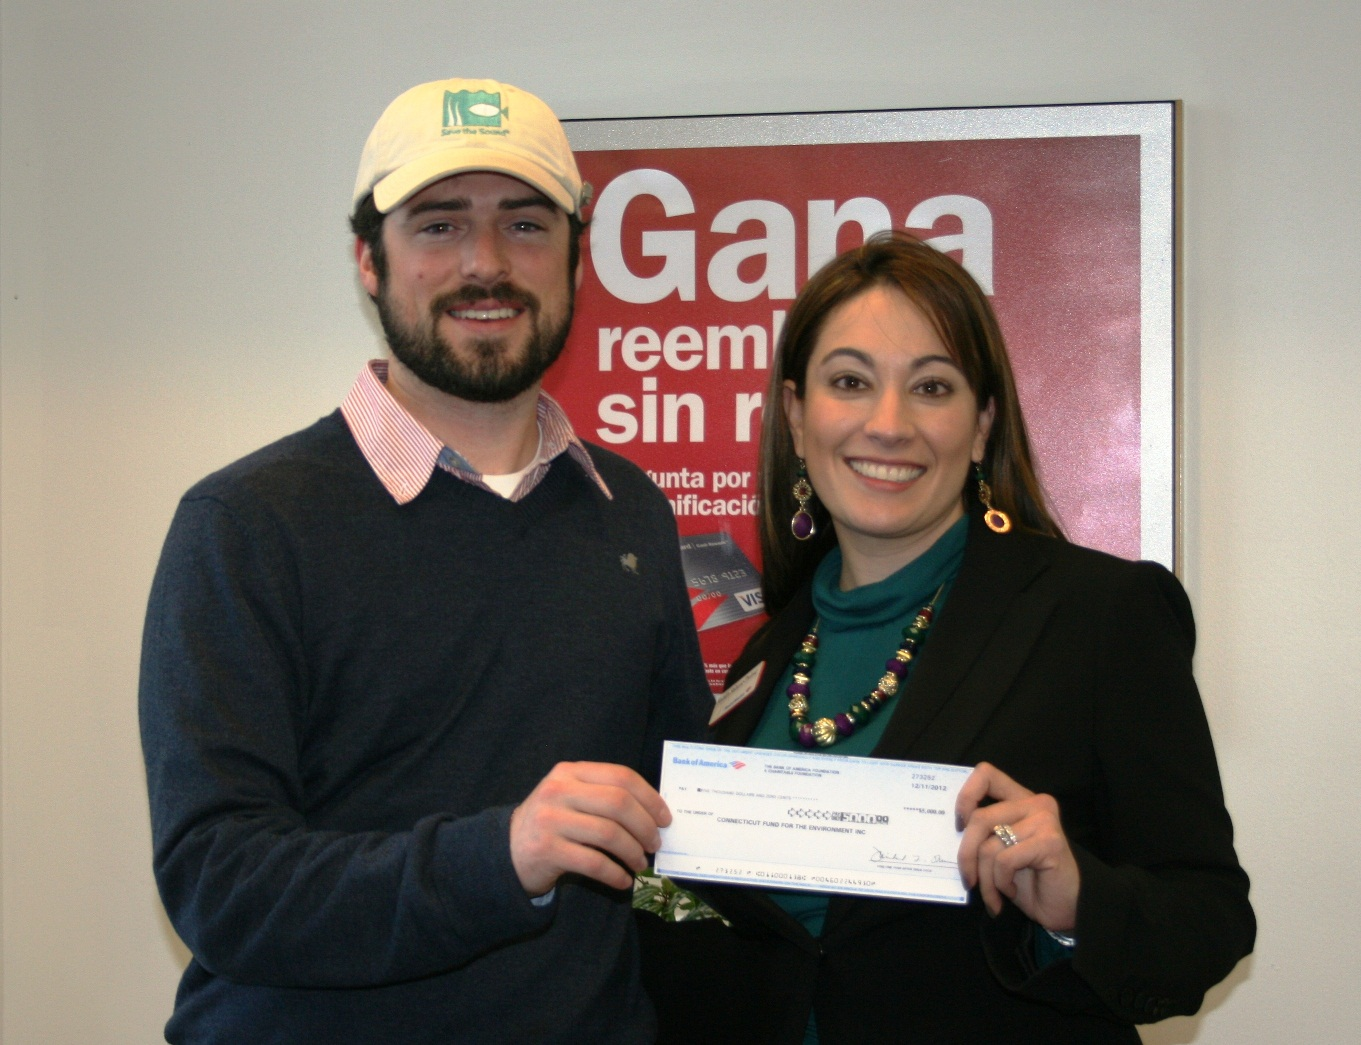 Save the Sound's Kierran Broatch (left) accepts a grant check from Bank of America's Natalia Salazar-Treloar